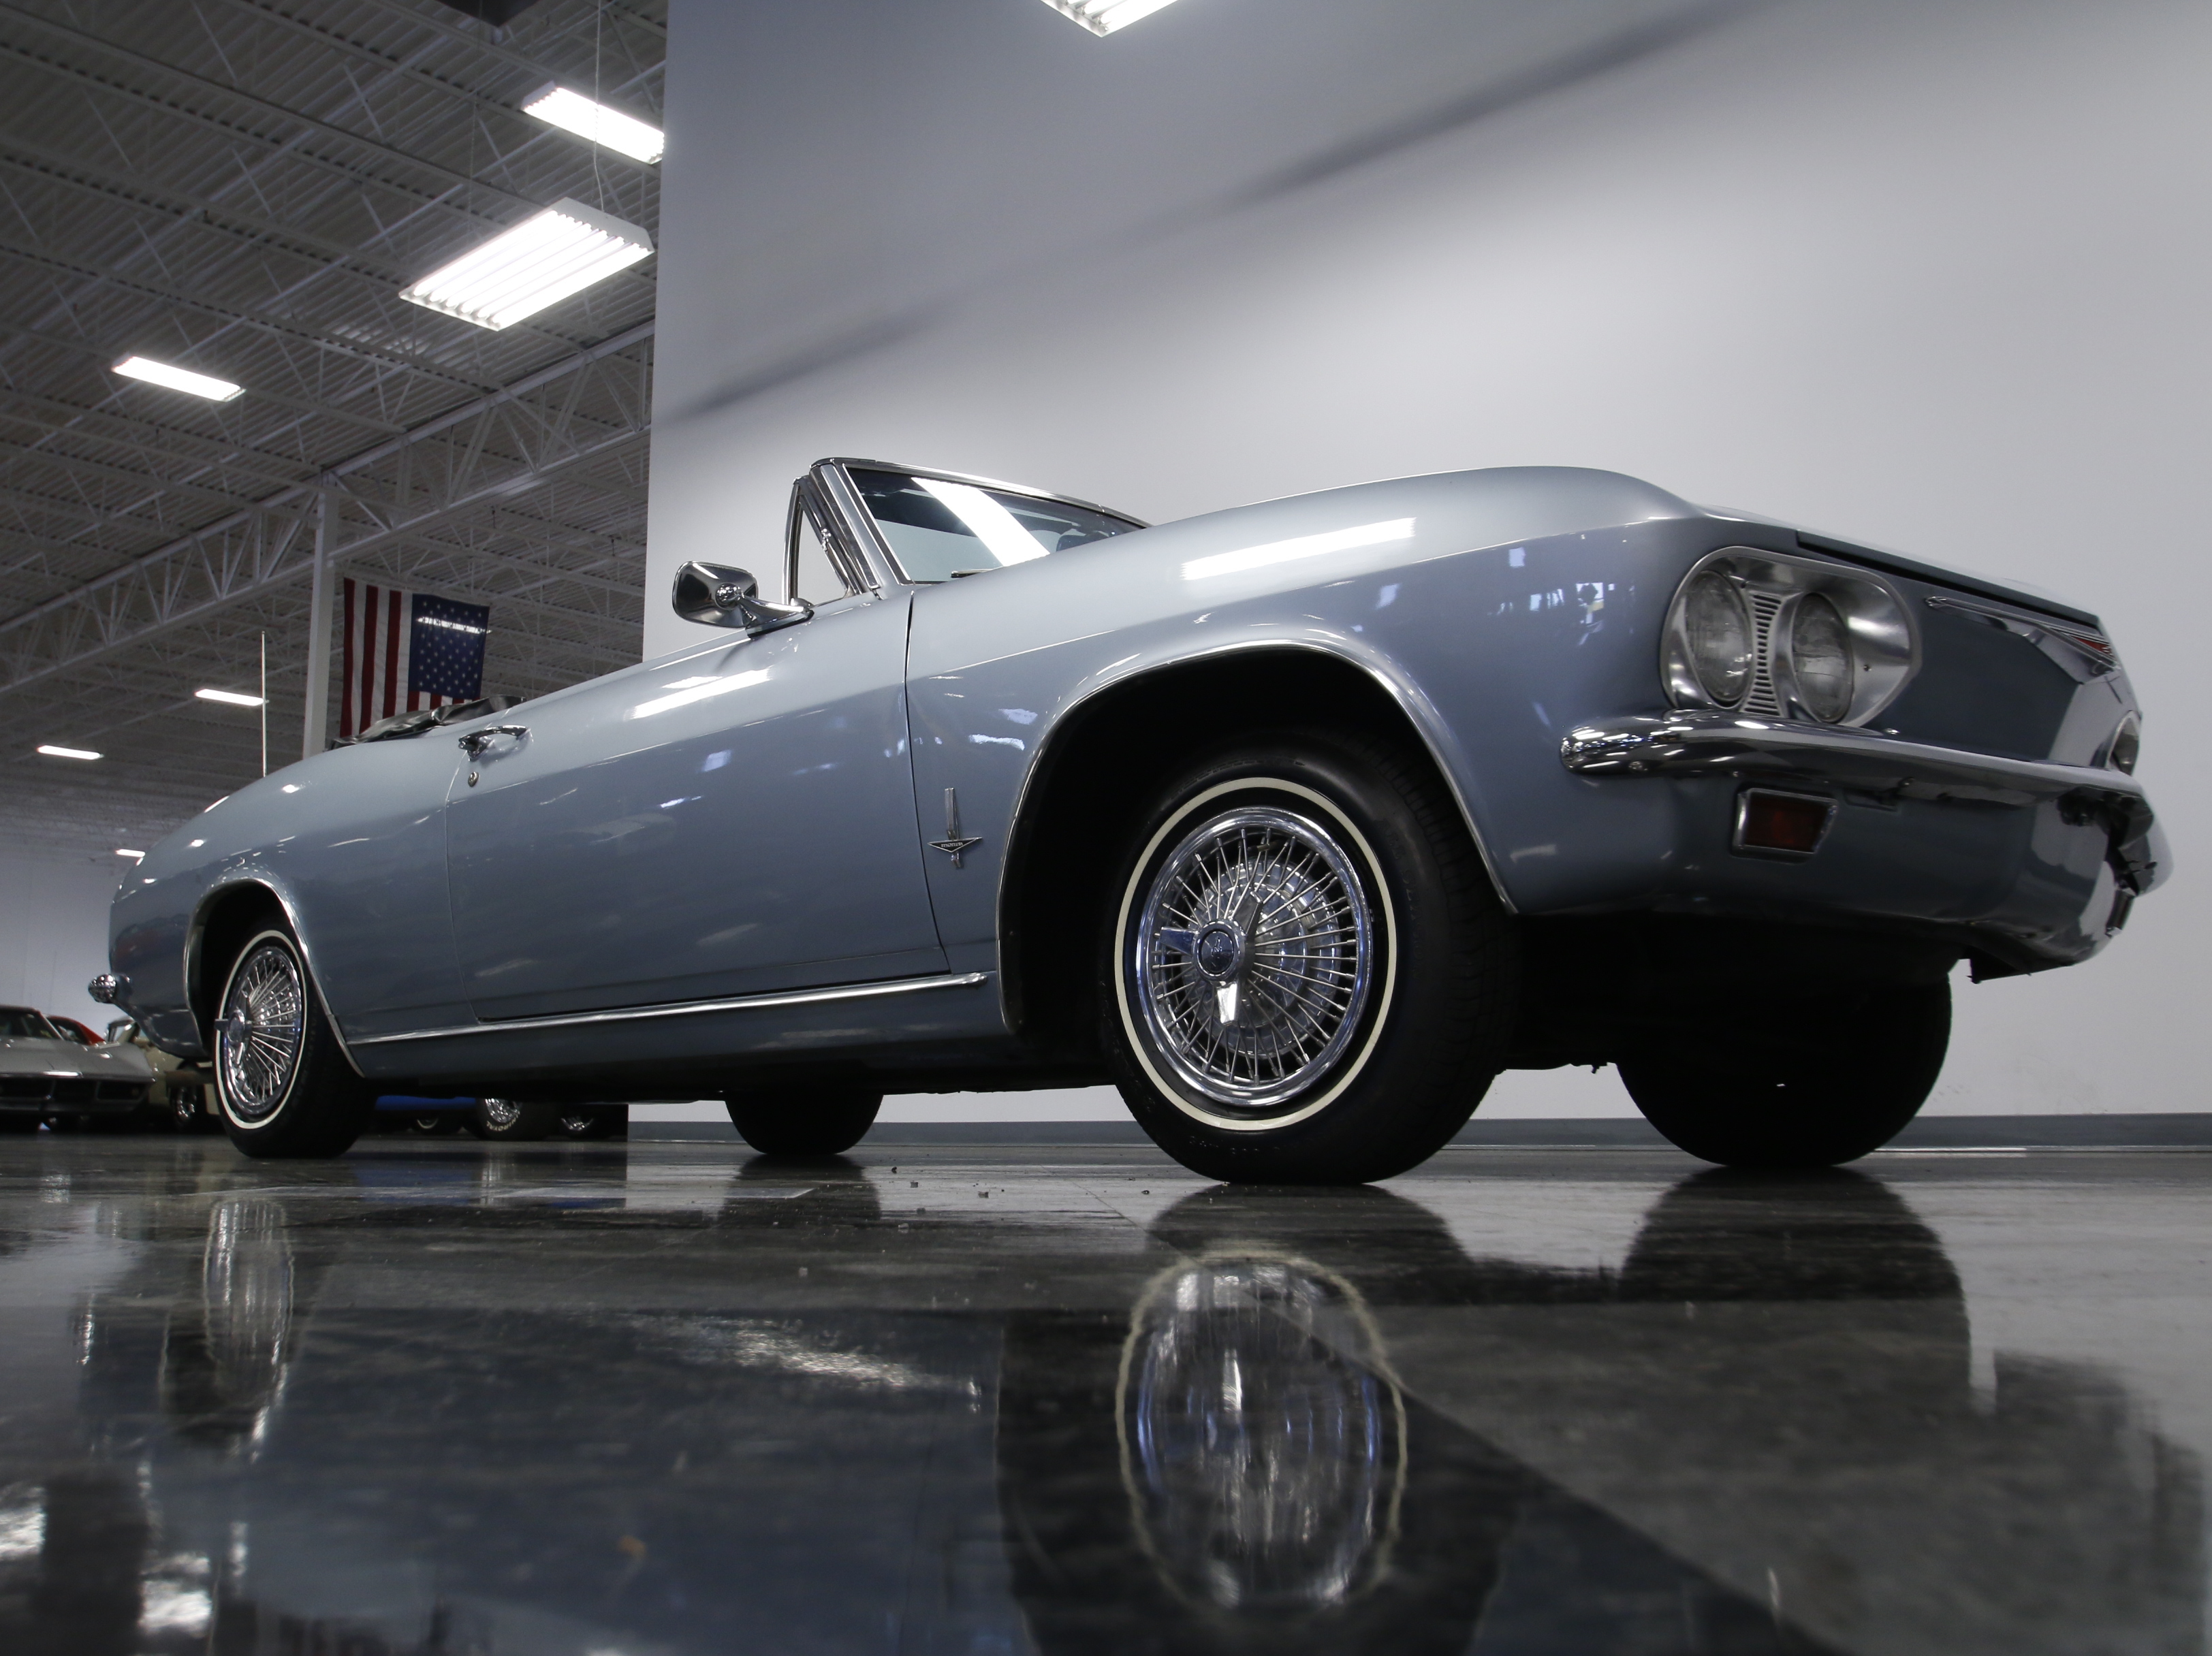 Chevrolet Corvair Monza 164 Ci Flat 6 2spd Auto Clean In out for ...